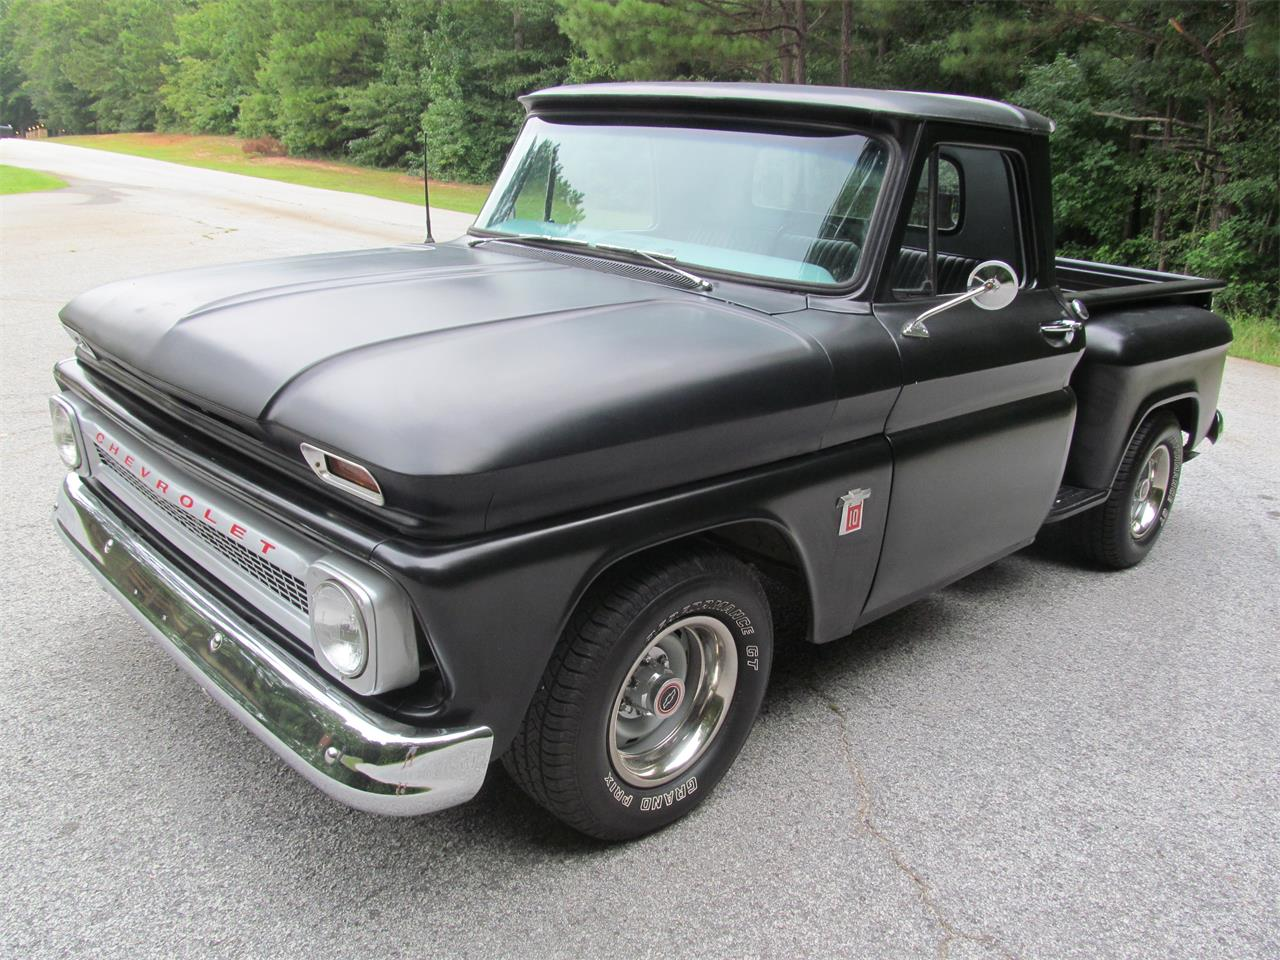 1964 Chevrolet C10 for sale in Fayetteville, GA – photo 13